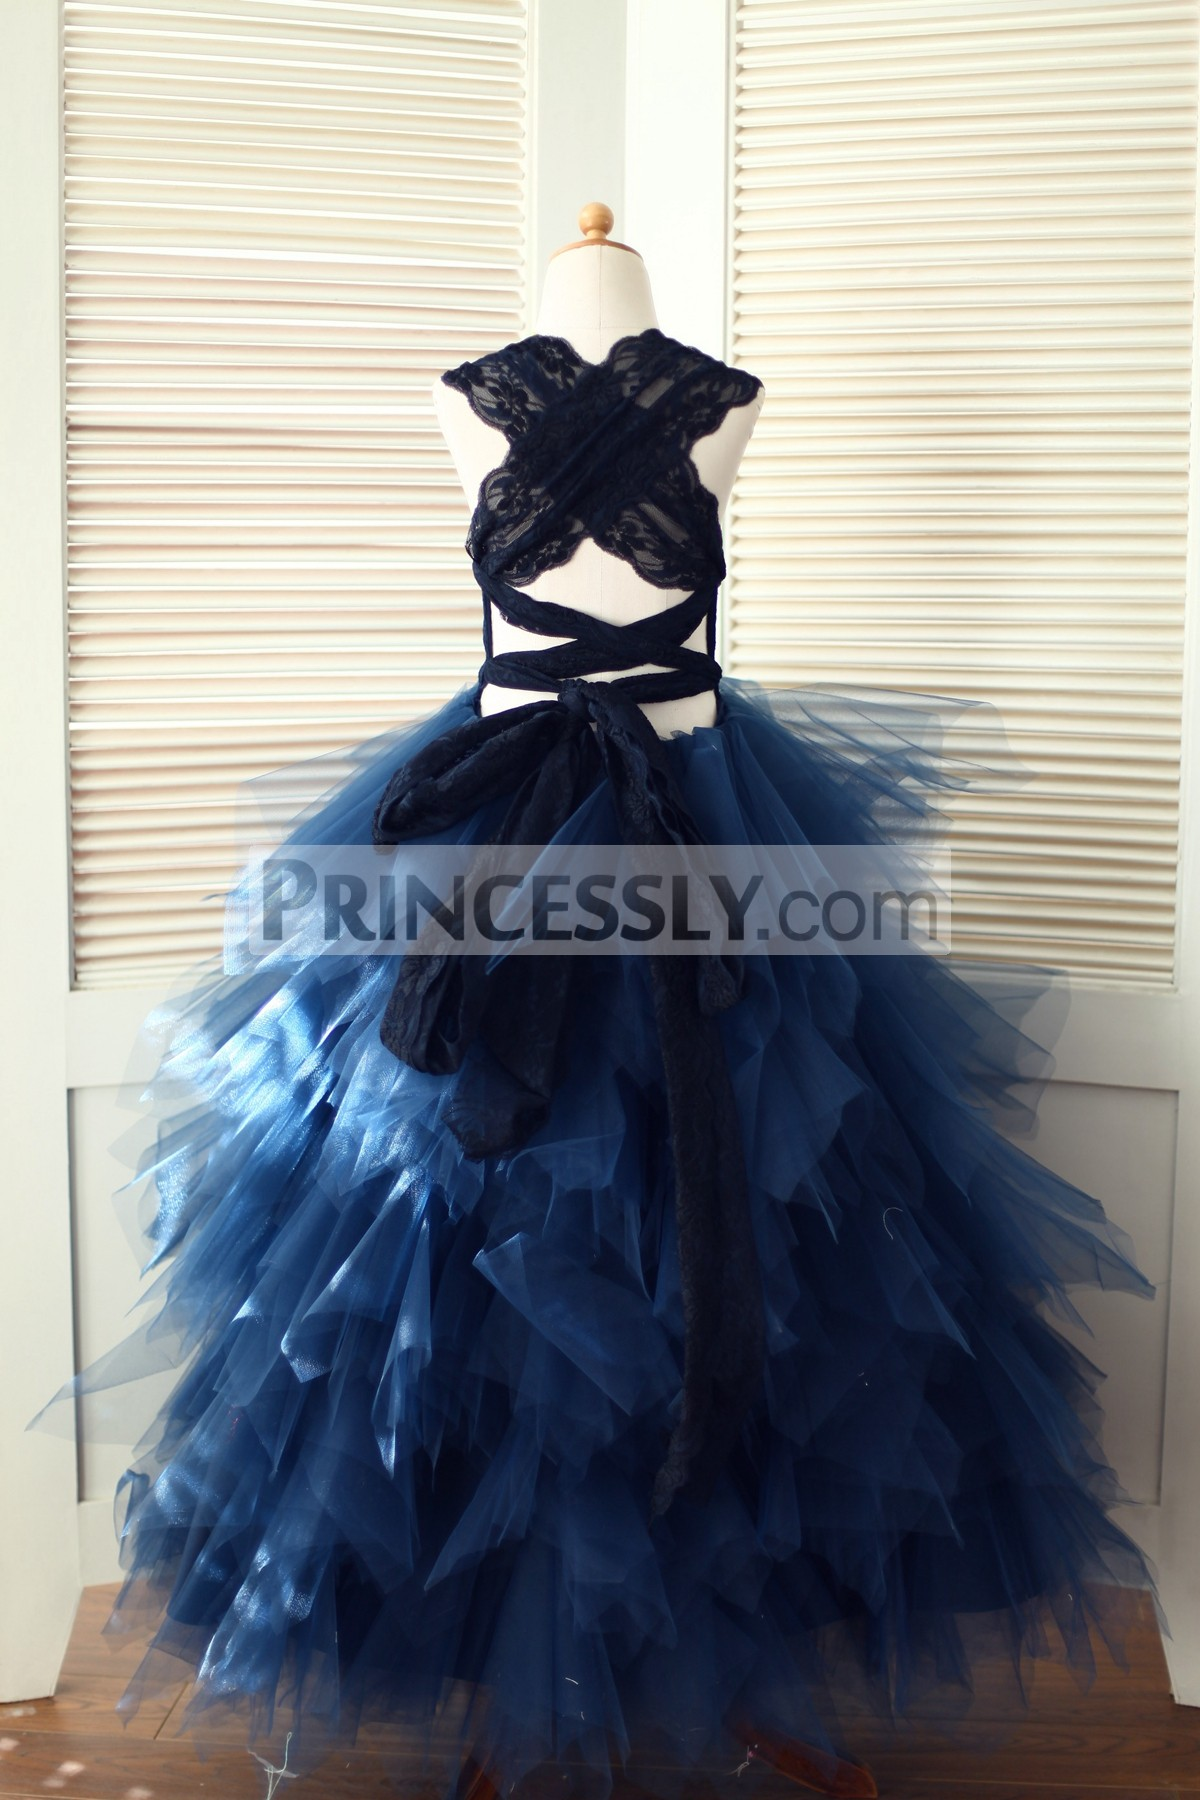 Lace Cross Back Feathered Tulle Ball Gown Long Skirt